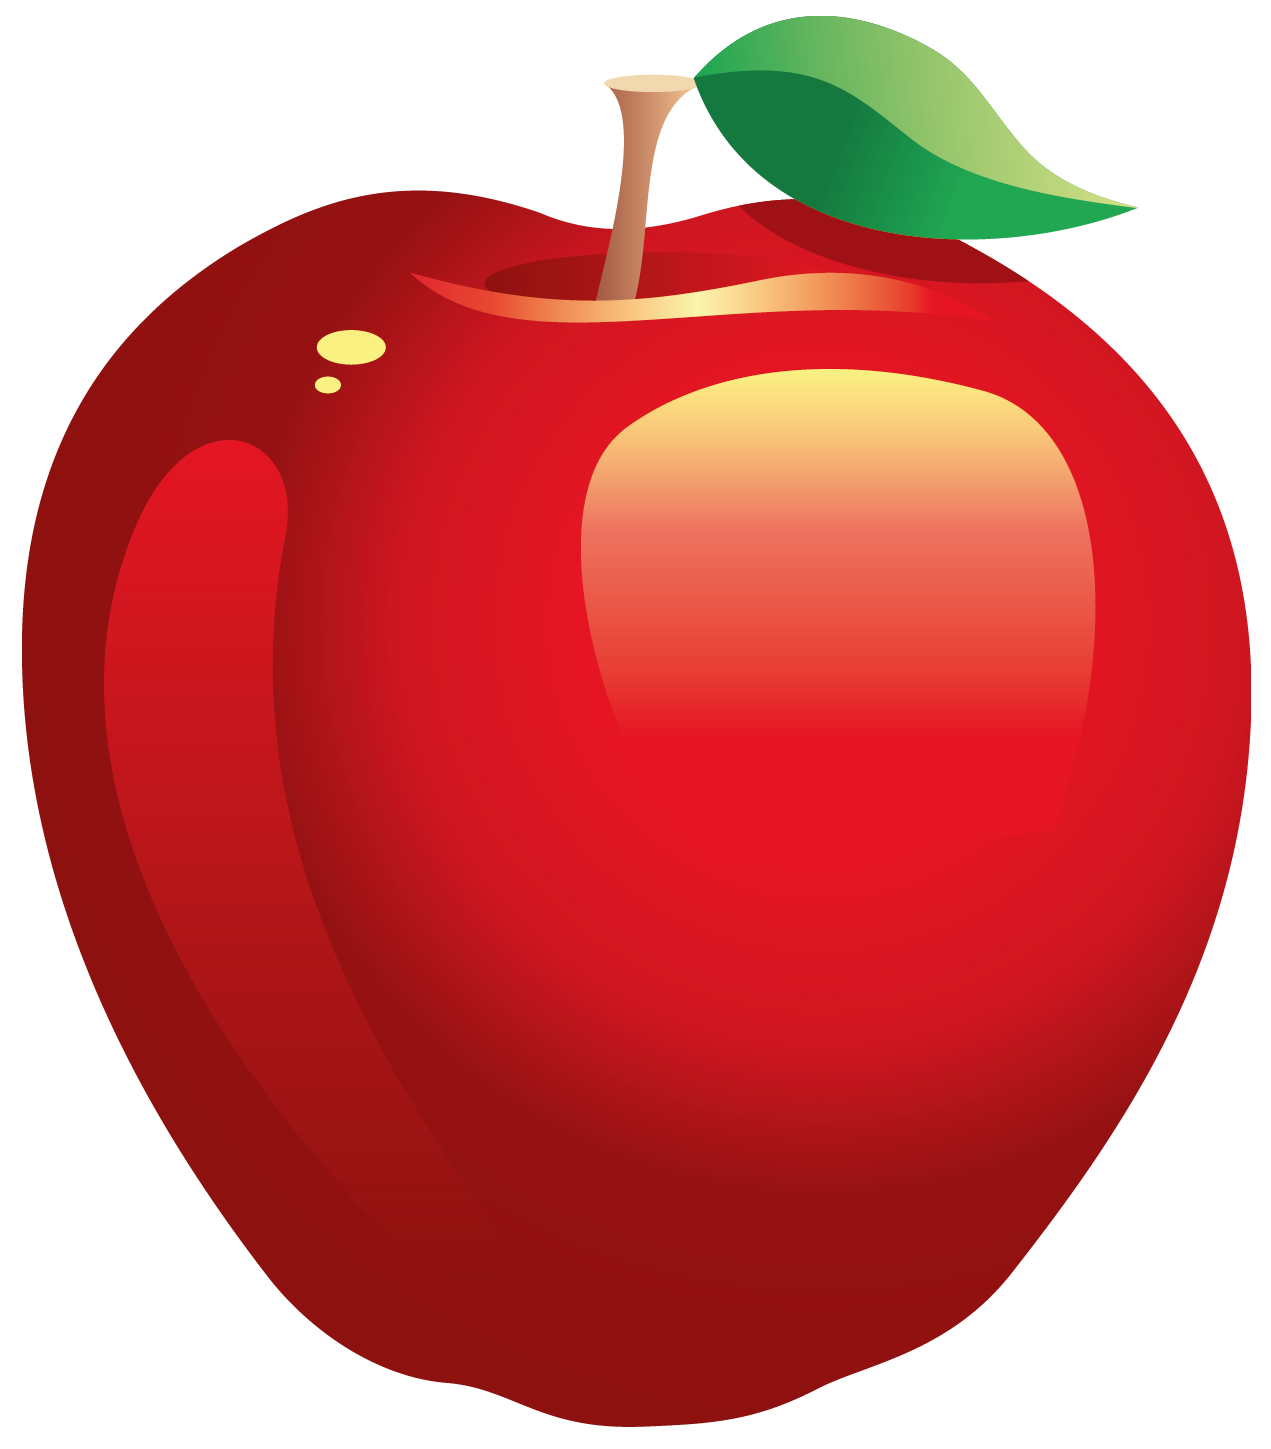 Apple clipart #12, Download drawings